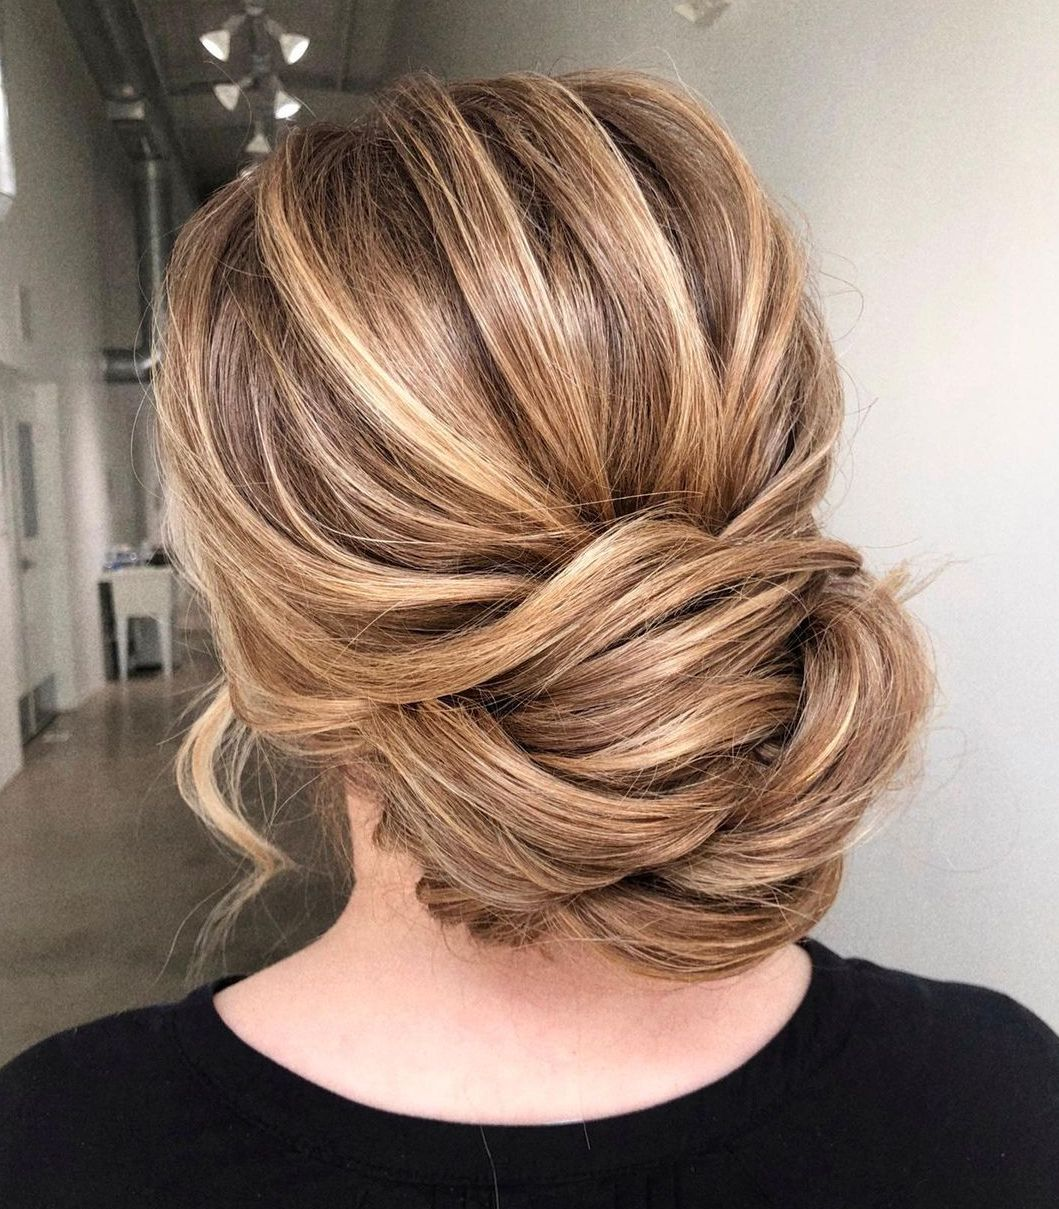 Relaxed Simple Evening Updo